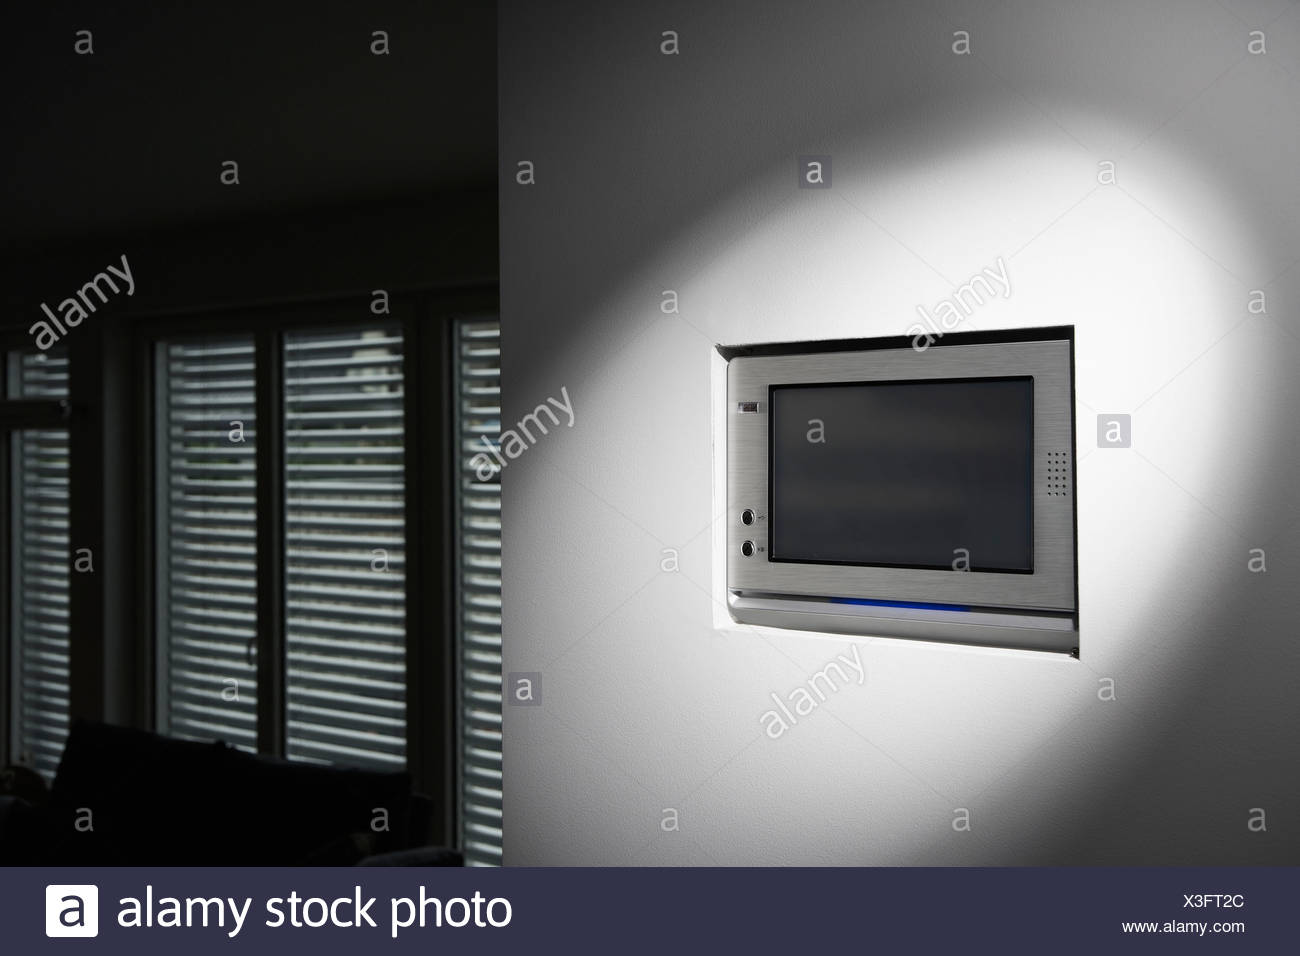 Germany, Cologne, Tele control for roller blinds - Stock Image